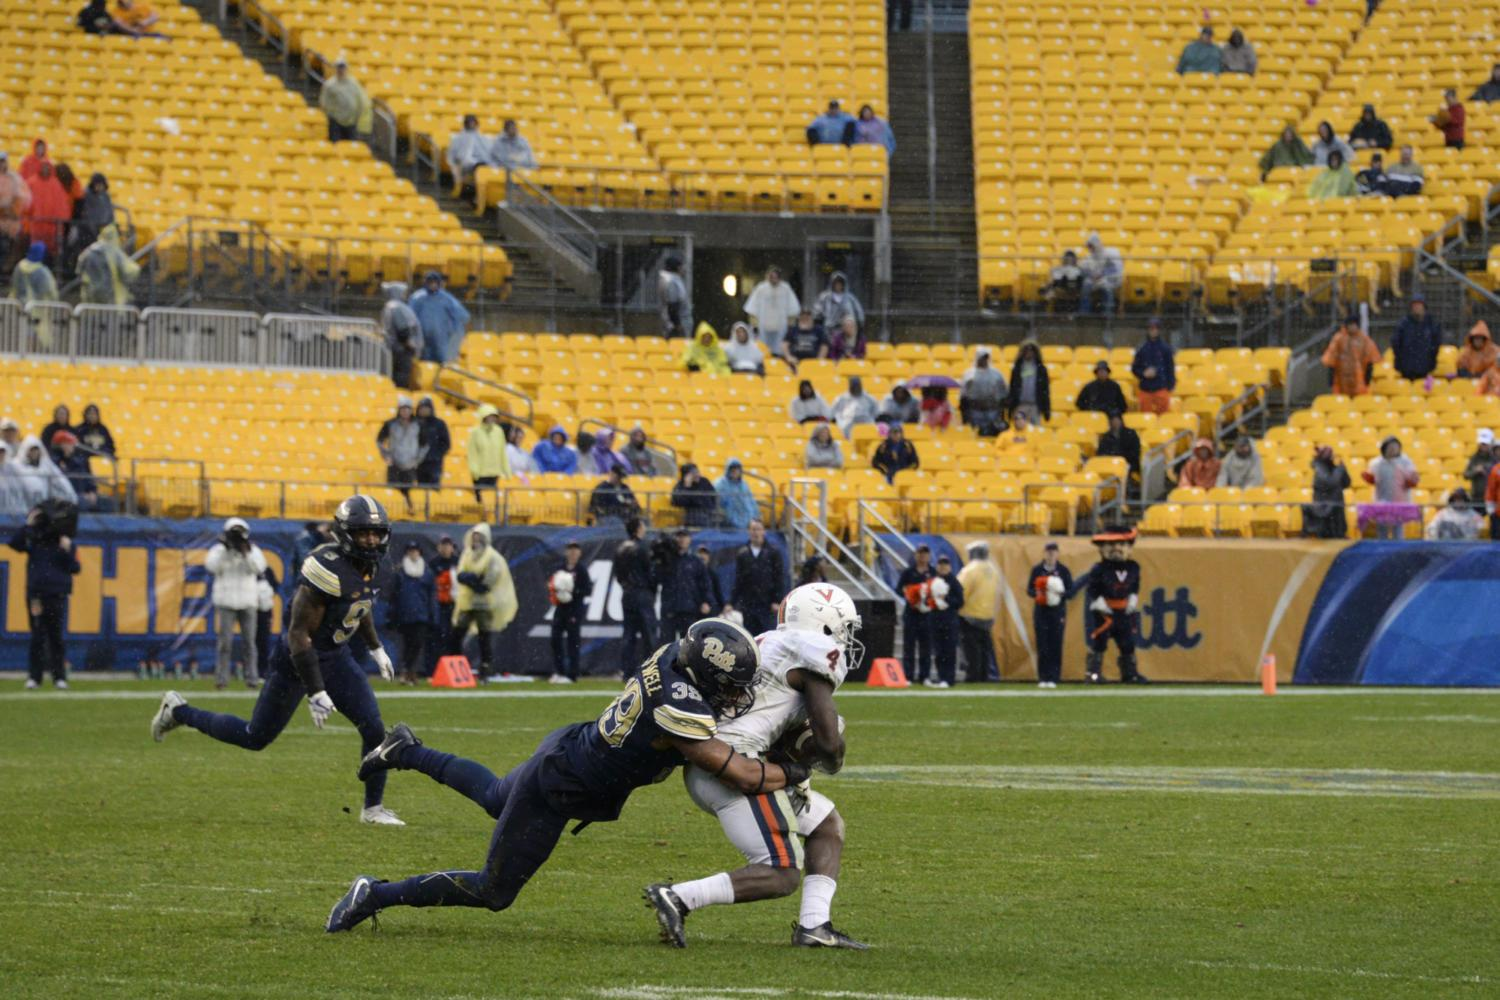 A small crowd watches as Pitt beats Virginia on a cold day last month. (Photo by Wenhao Wu | Assistant Visual Editor)